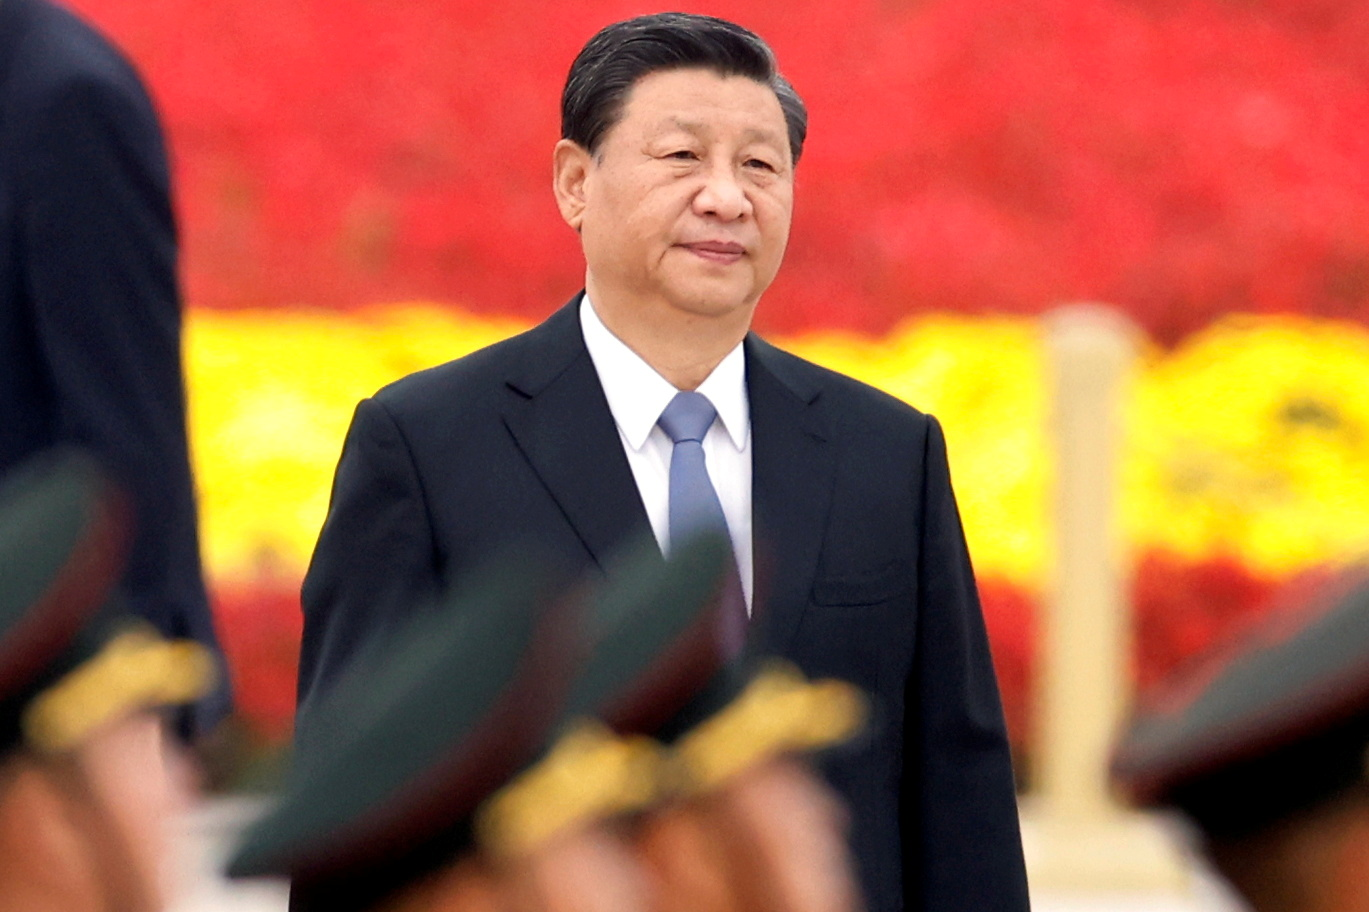 Chinese President Xi Jinping arrives for a ceremony at the Monument to the People's Heroes on Tiananmen Square to mark Martyrs' Day, in Beijing, China September 30, 2021. REUTERS/Carlos Garcia Rawlins/File Photo